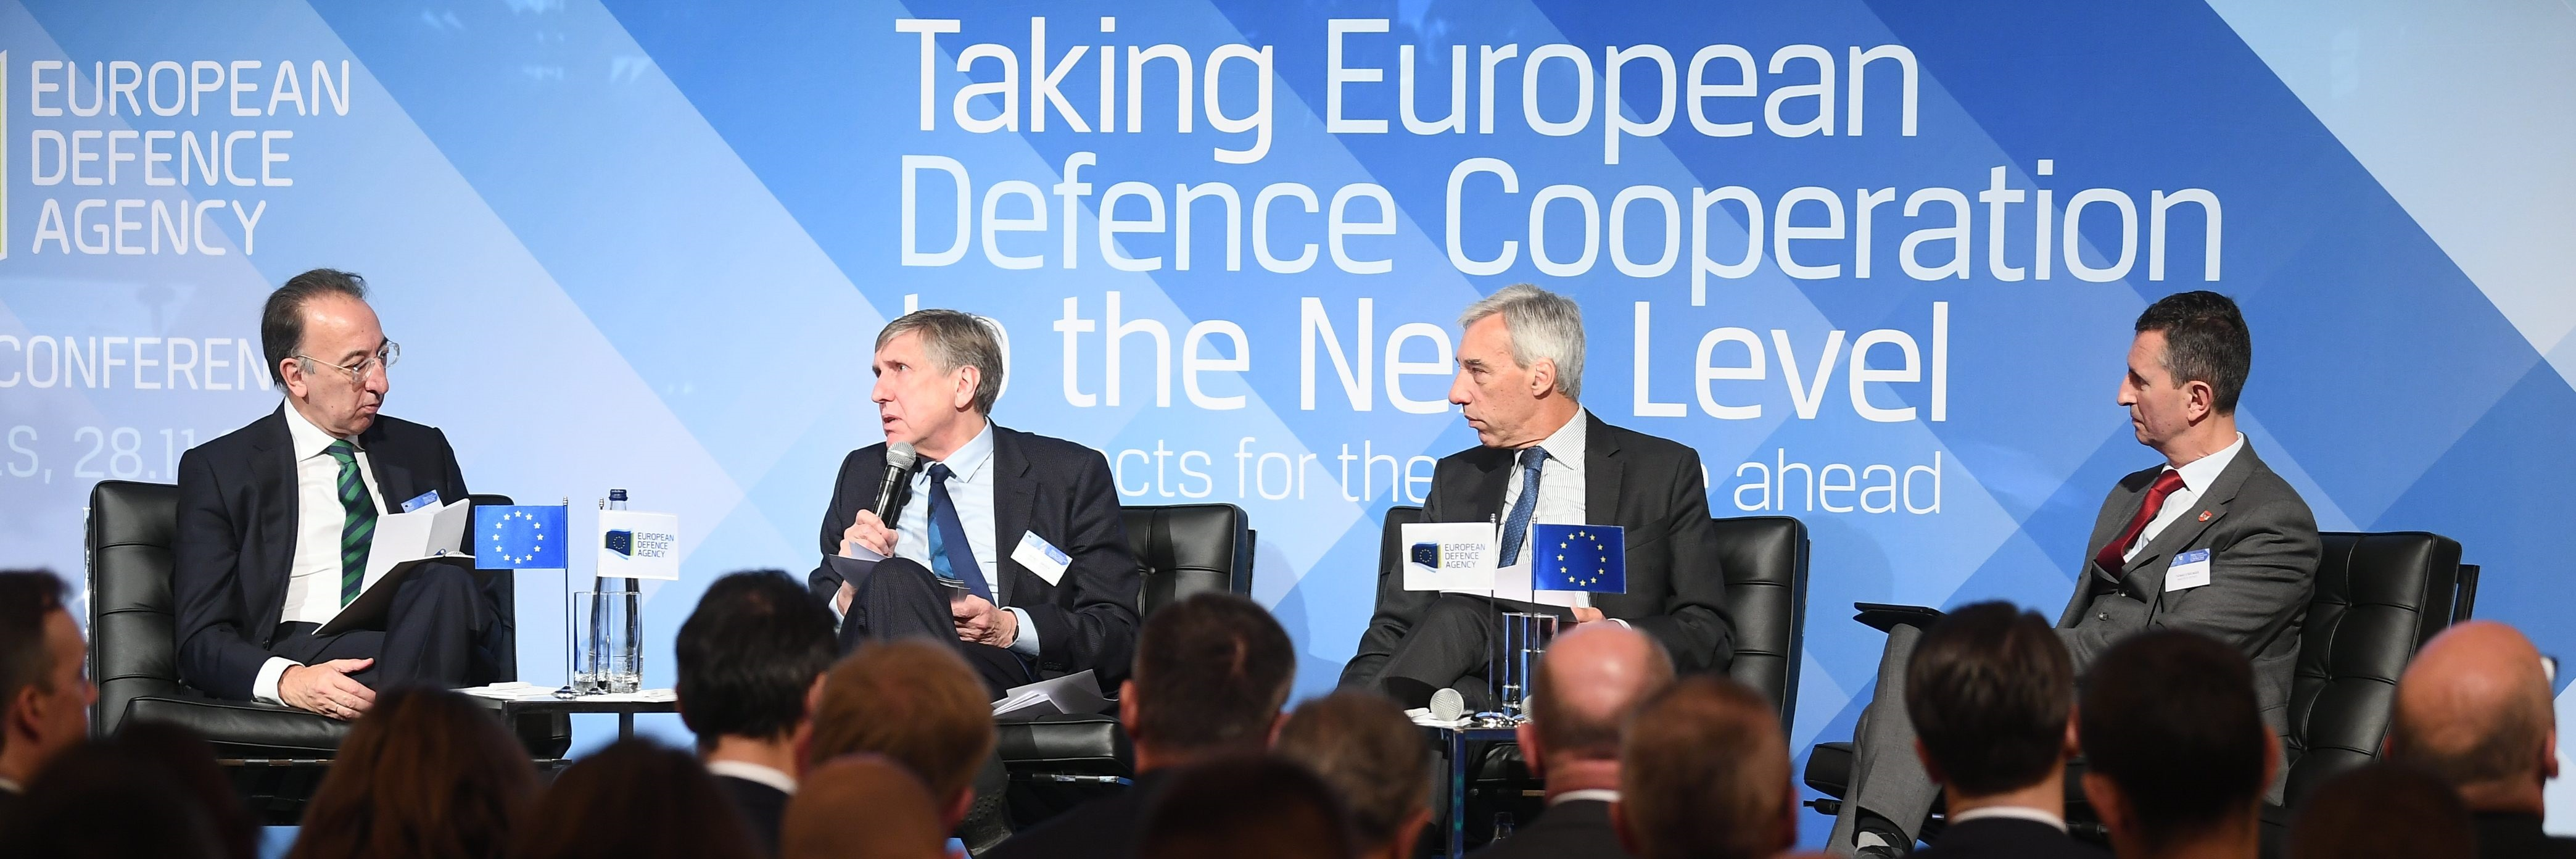 Annual Conference: Ministers join high-level debate on future of EU defence